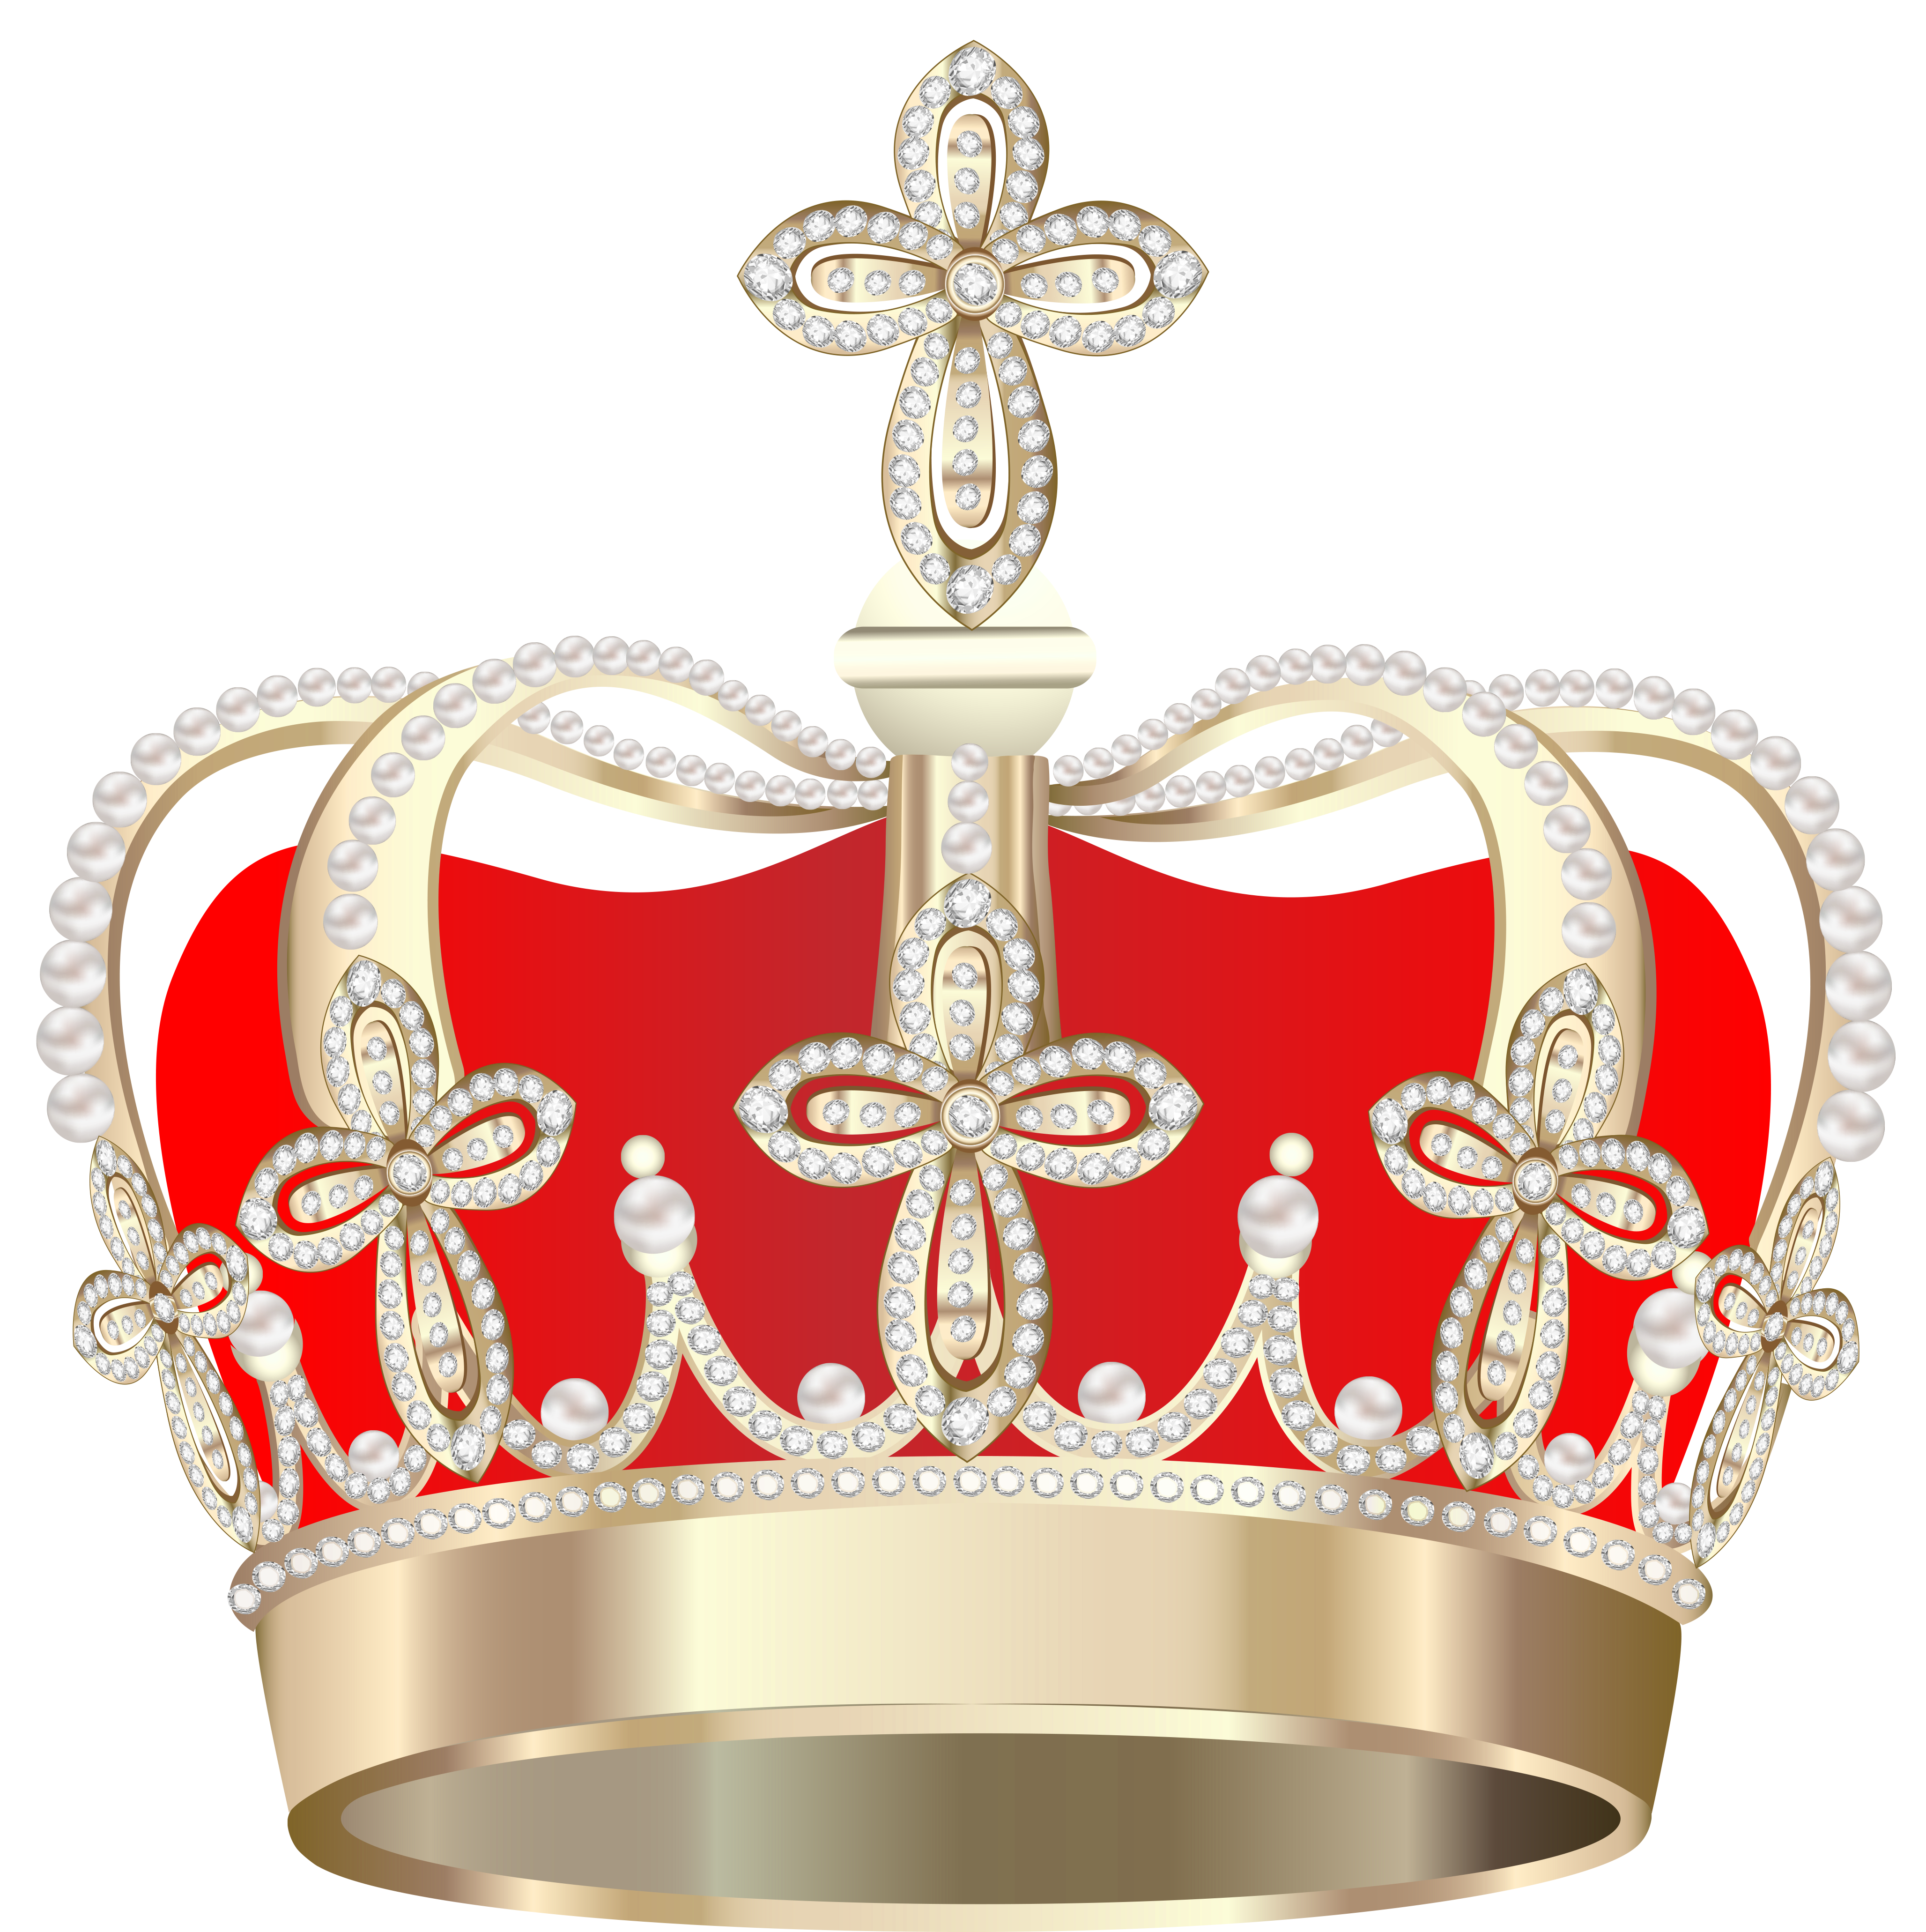 Gold bling crown clipart clip art free library Transparent Crown PNG Picture | Gallery Yopriceville - High-Quality ... clip art free library